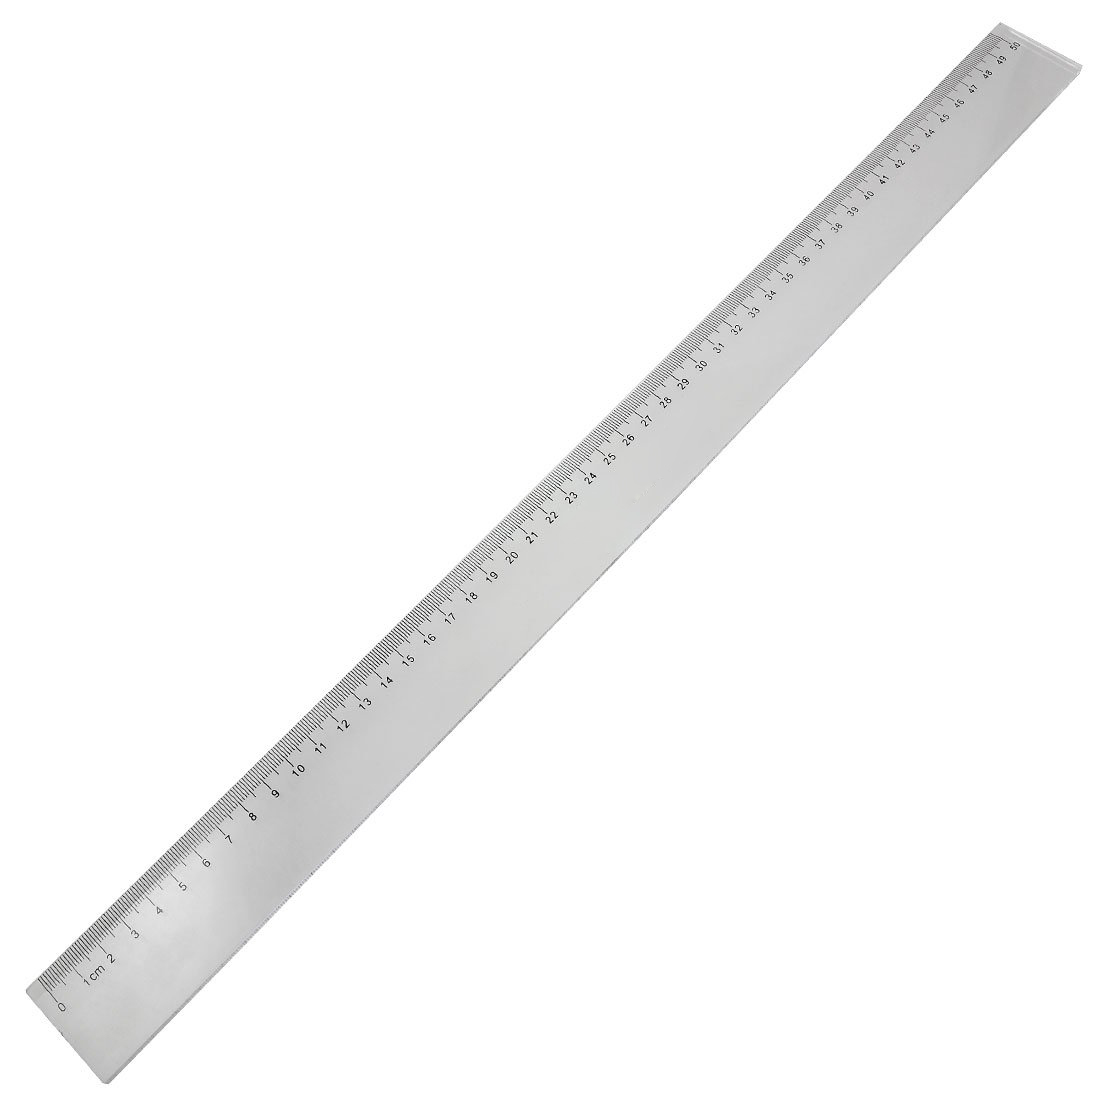 2 PCS Of 50cm Clear Plastic Measuring Long Straight Centimeter Ruler